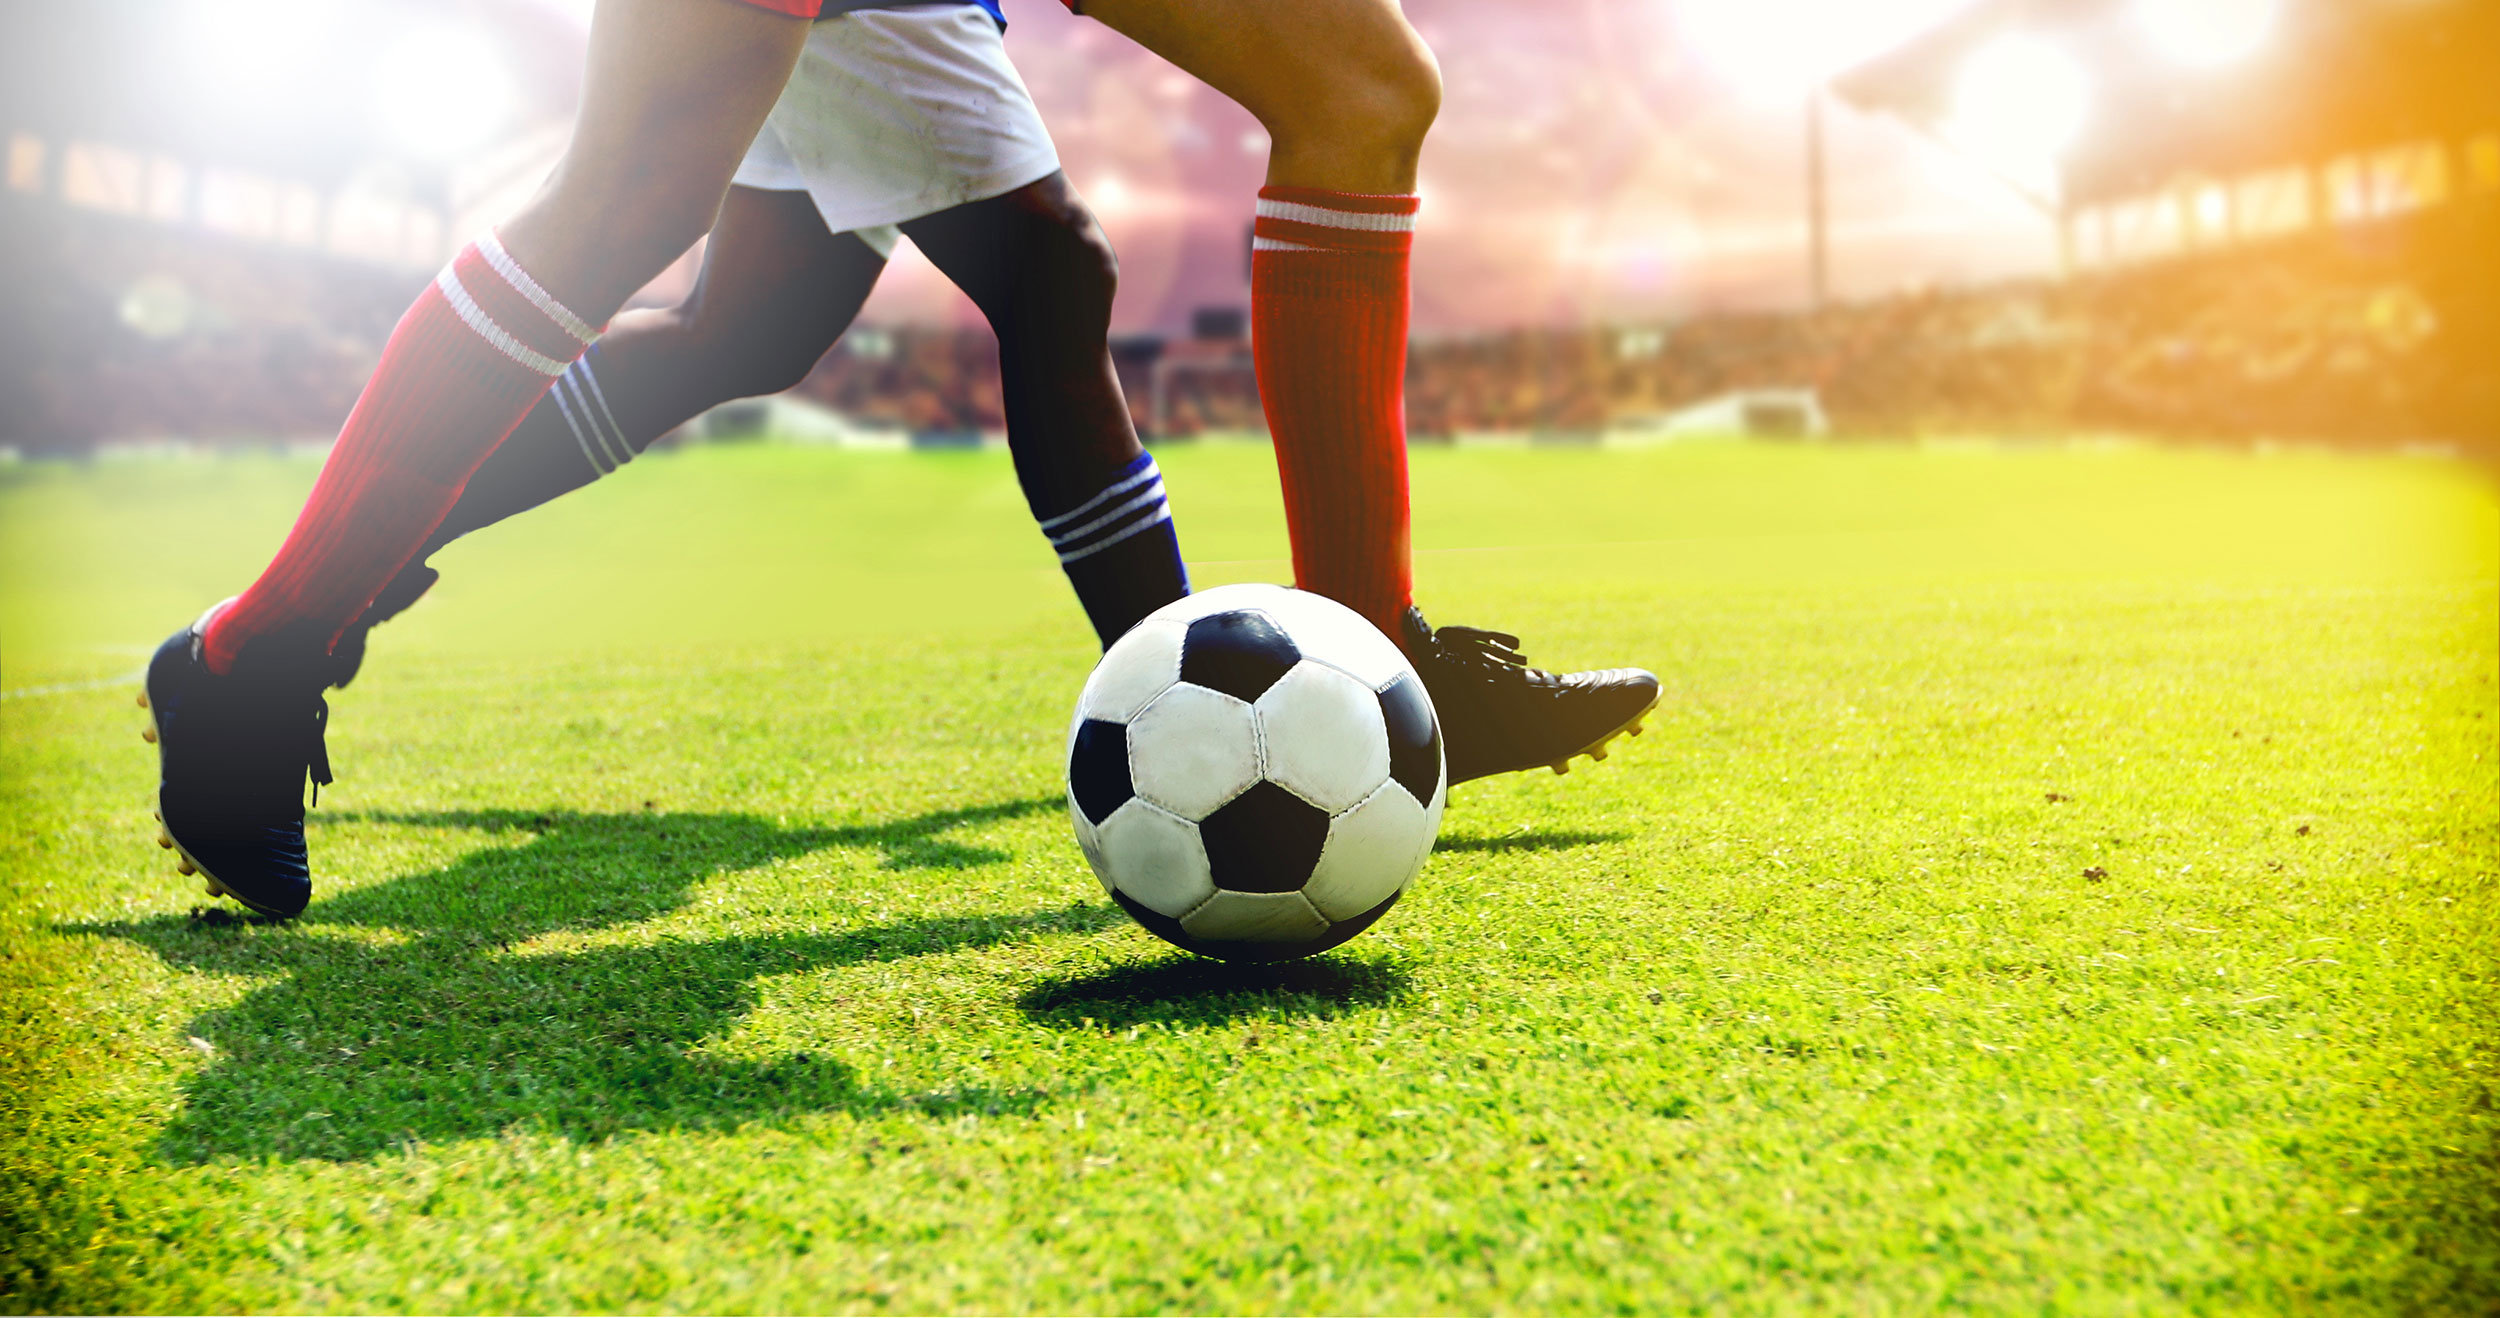 Study Evaluates Effect Of Heading A Ball In Soccer